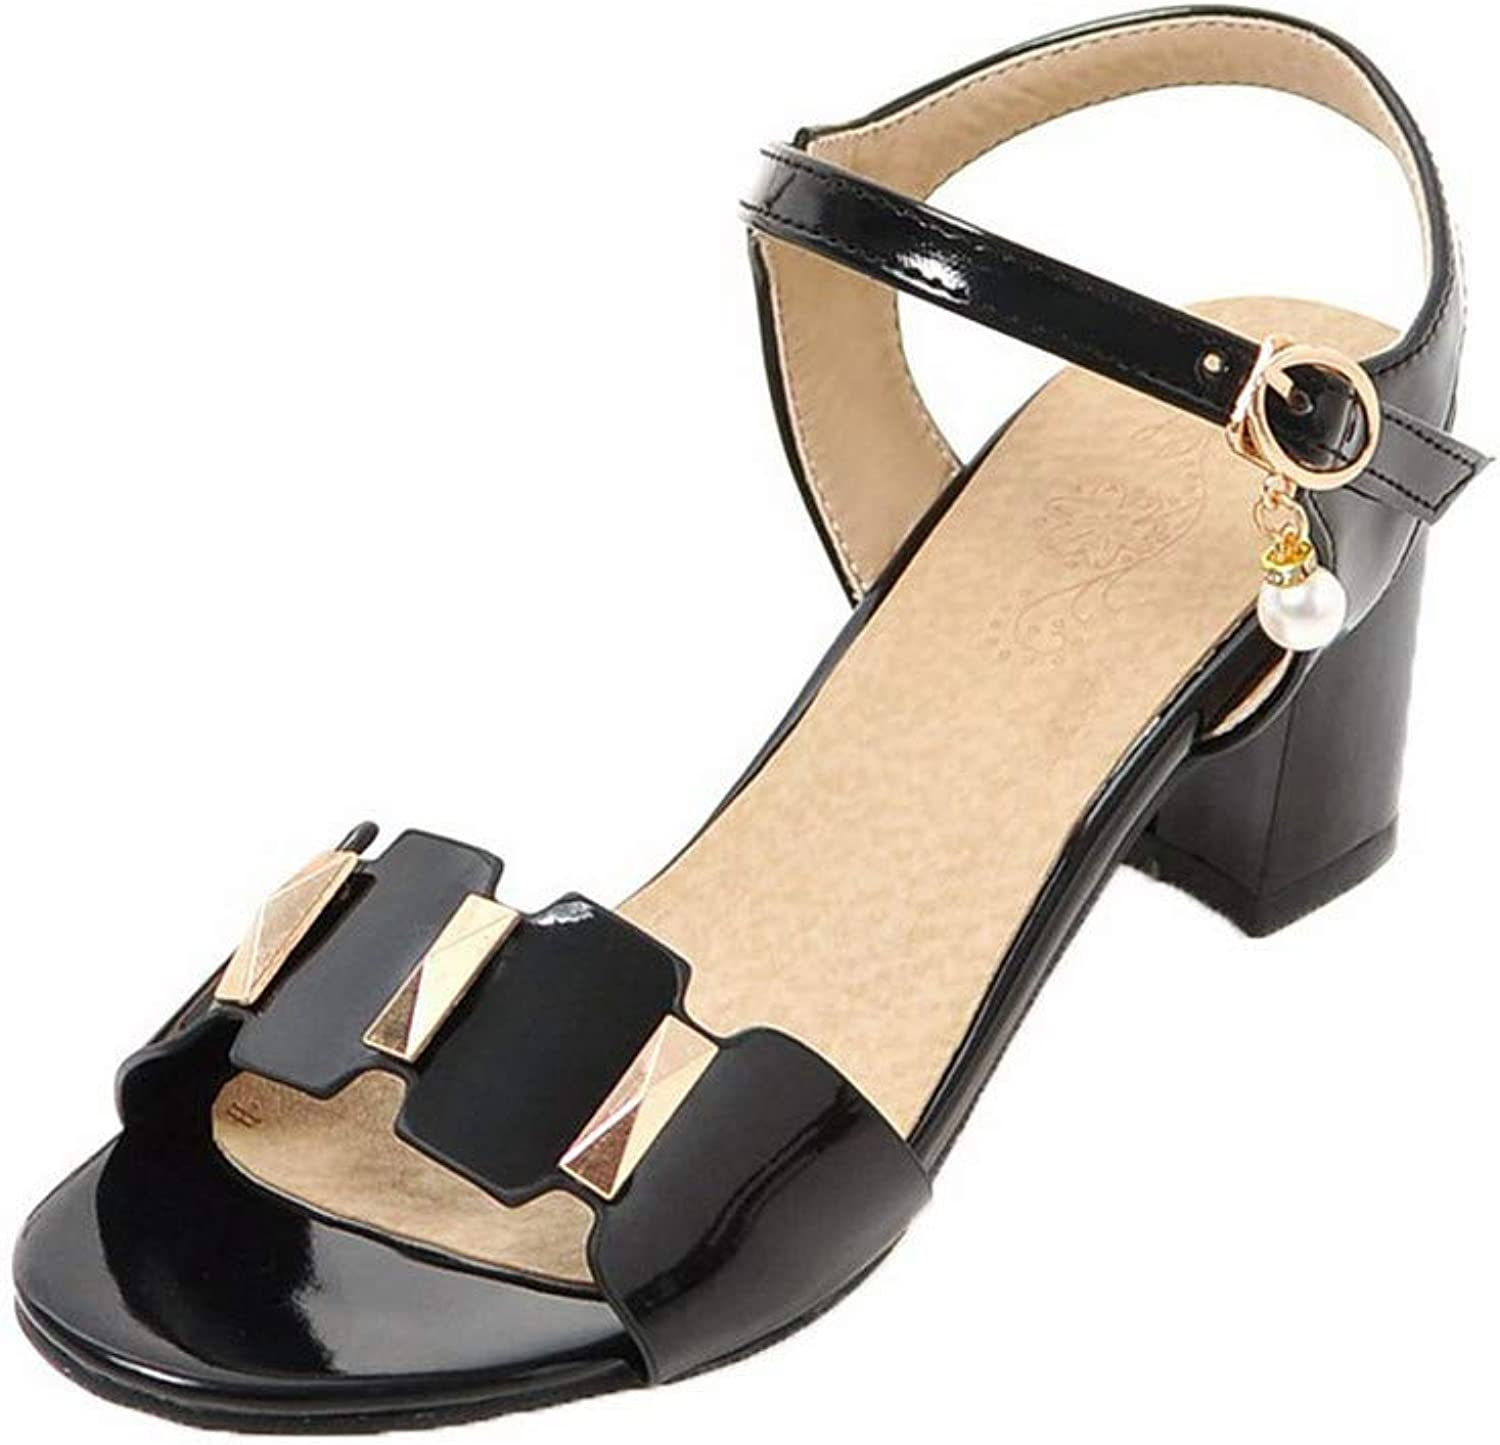 WeenFashion Women's Kitten-Heels Solid Buckle Patent Leather Open-Toe Sandals, AMGLX009979